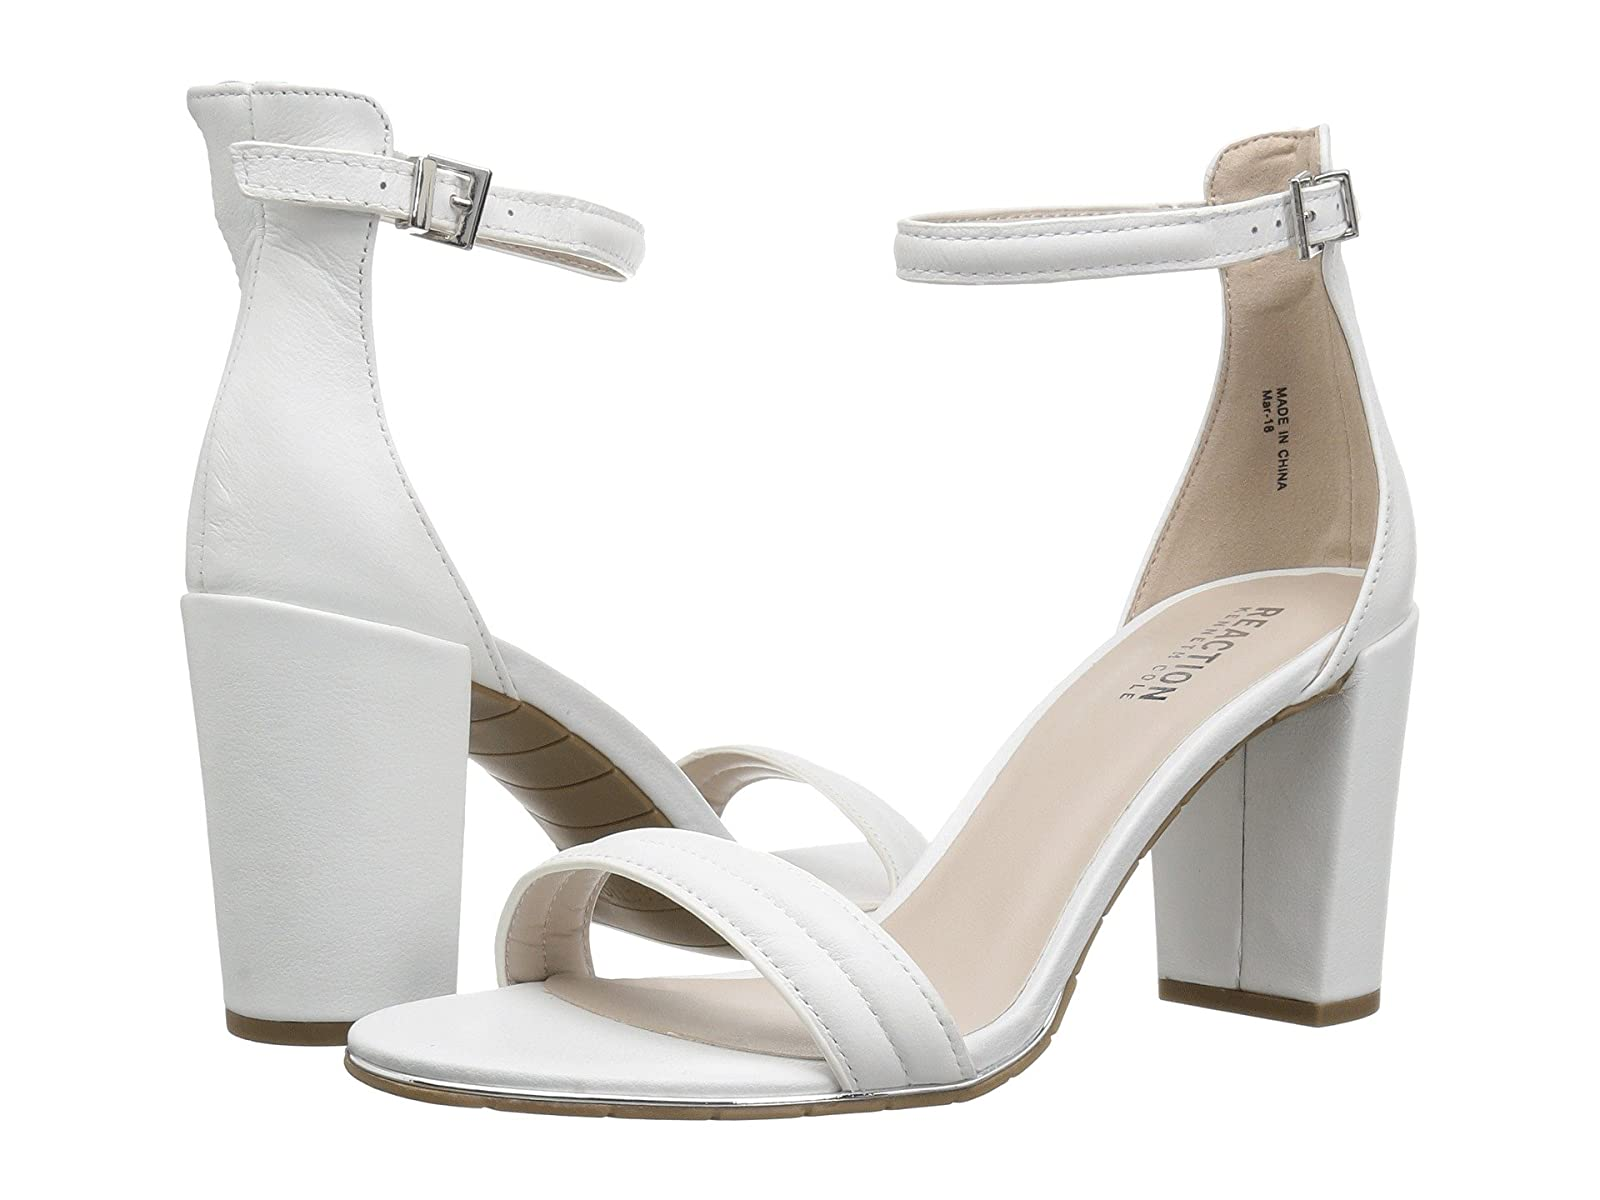 Kenneth Cole Reaction LolitaCheap and distinctive eye-catching shoes